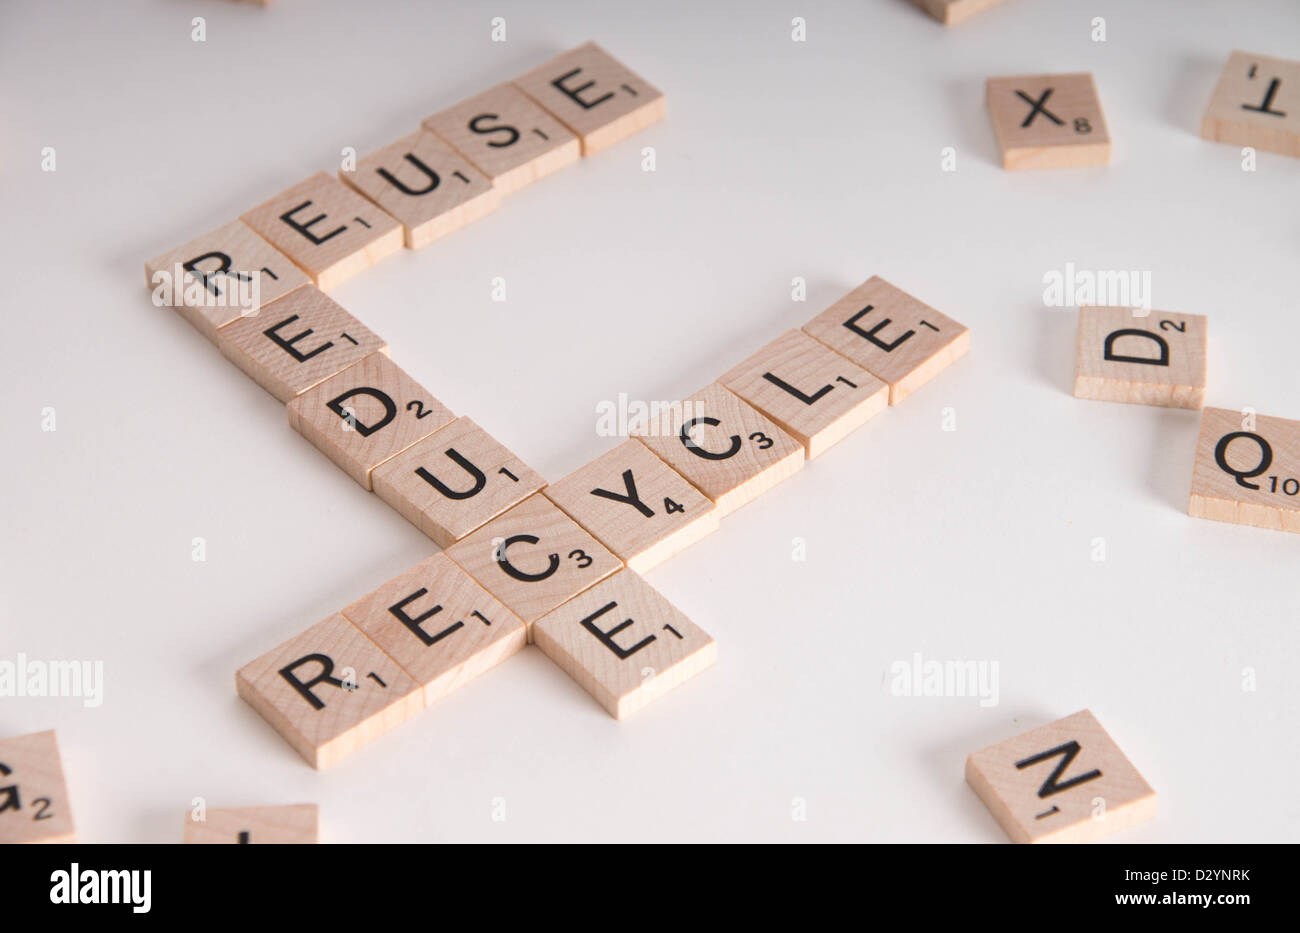 reduce reuse recycle stock photos u0026 reduce reuse recycle stock